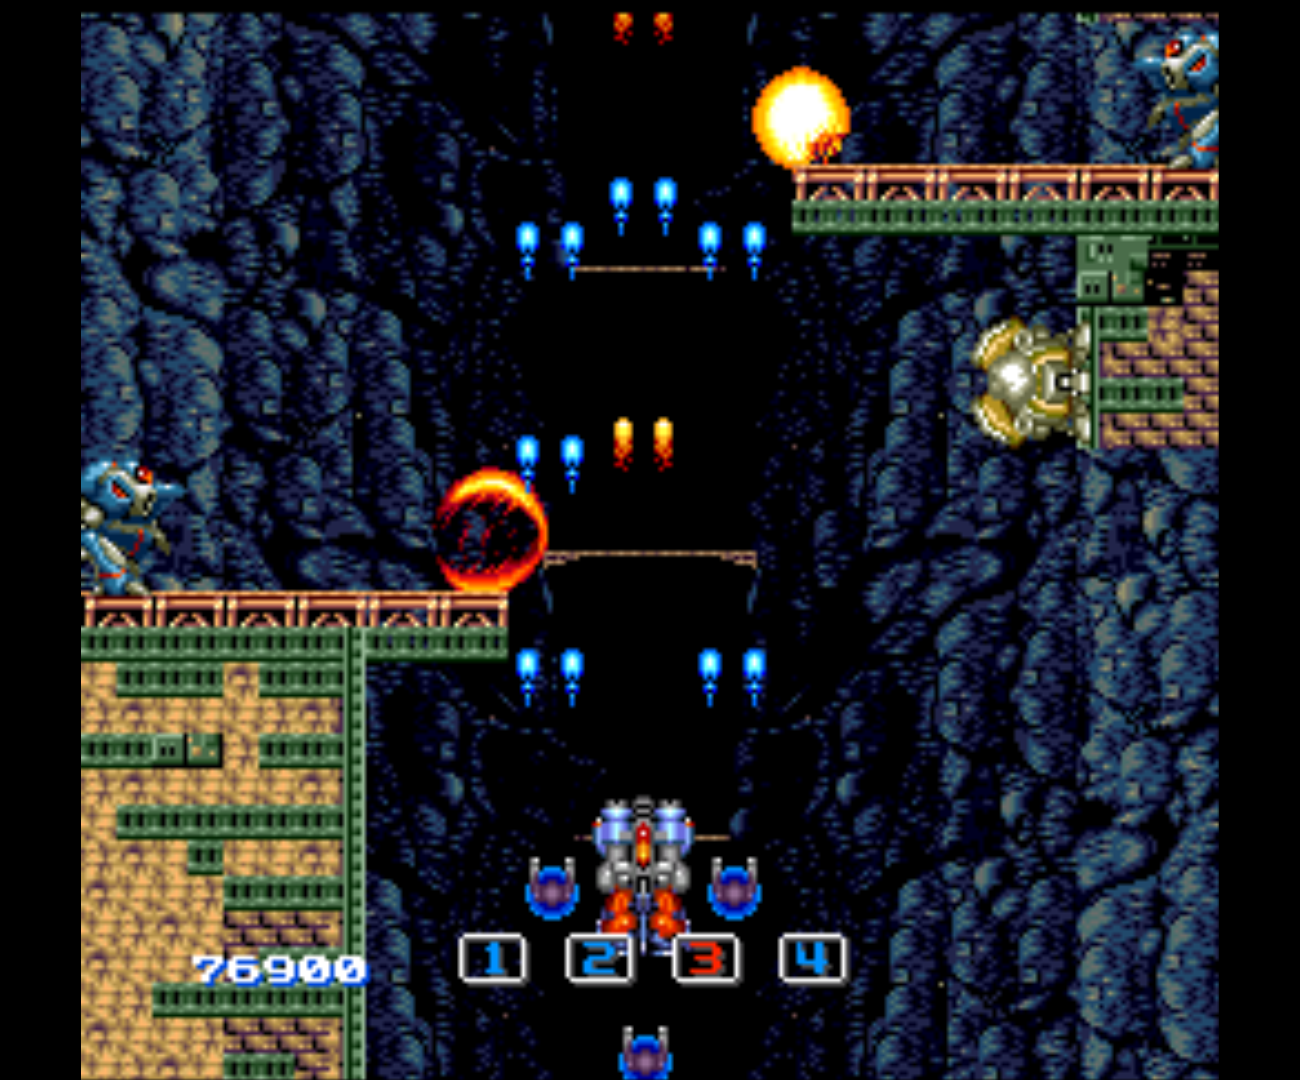 Figure 7 - More shooting action for the PC-Engine